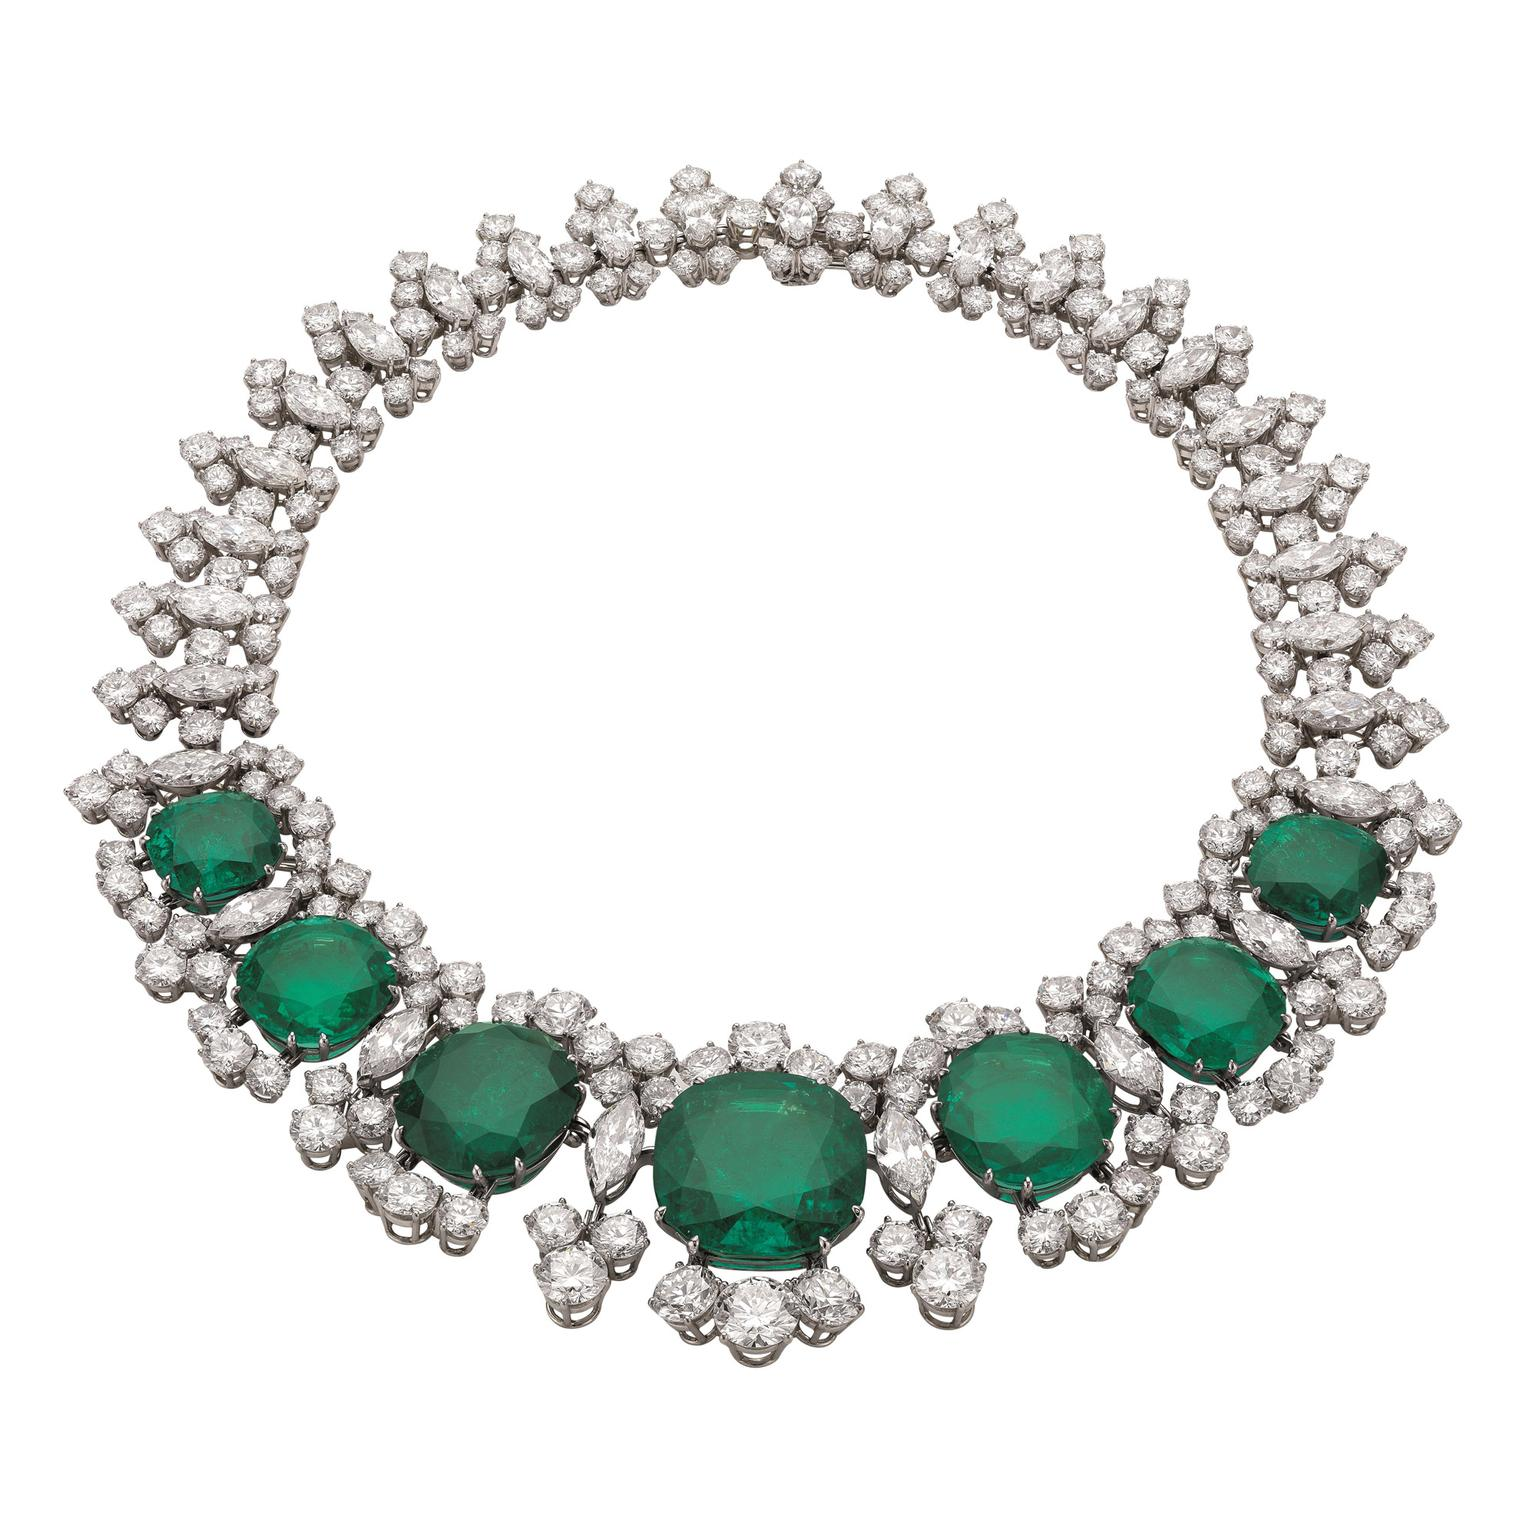 Heritage Bulgari Seven Wonders Colombian emerald necklace